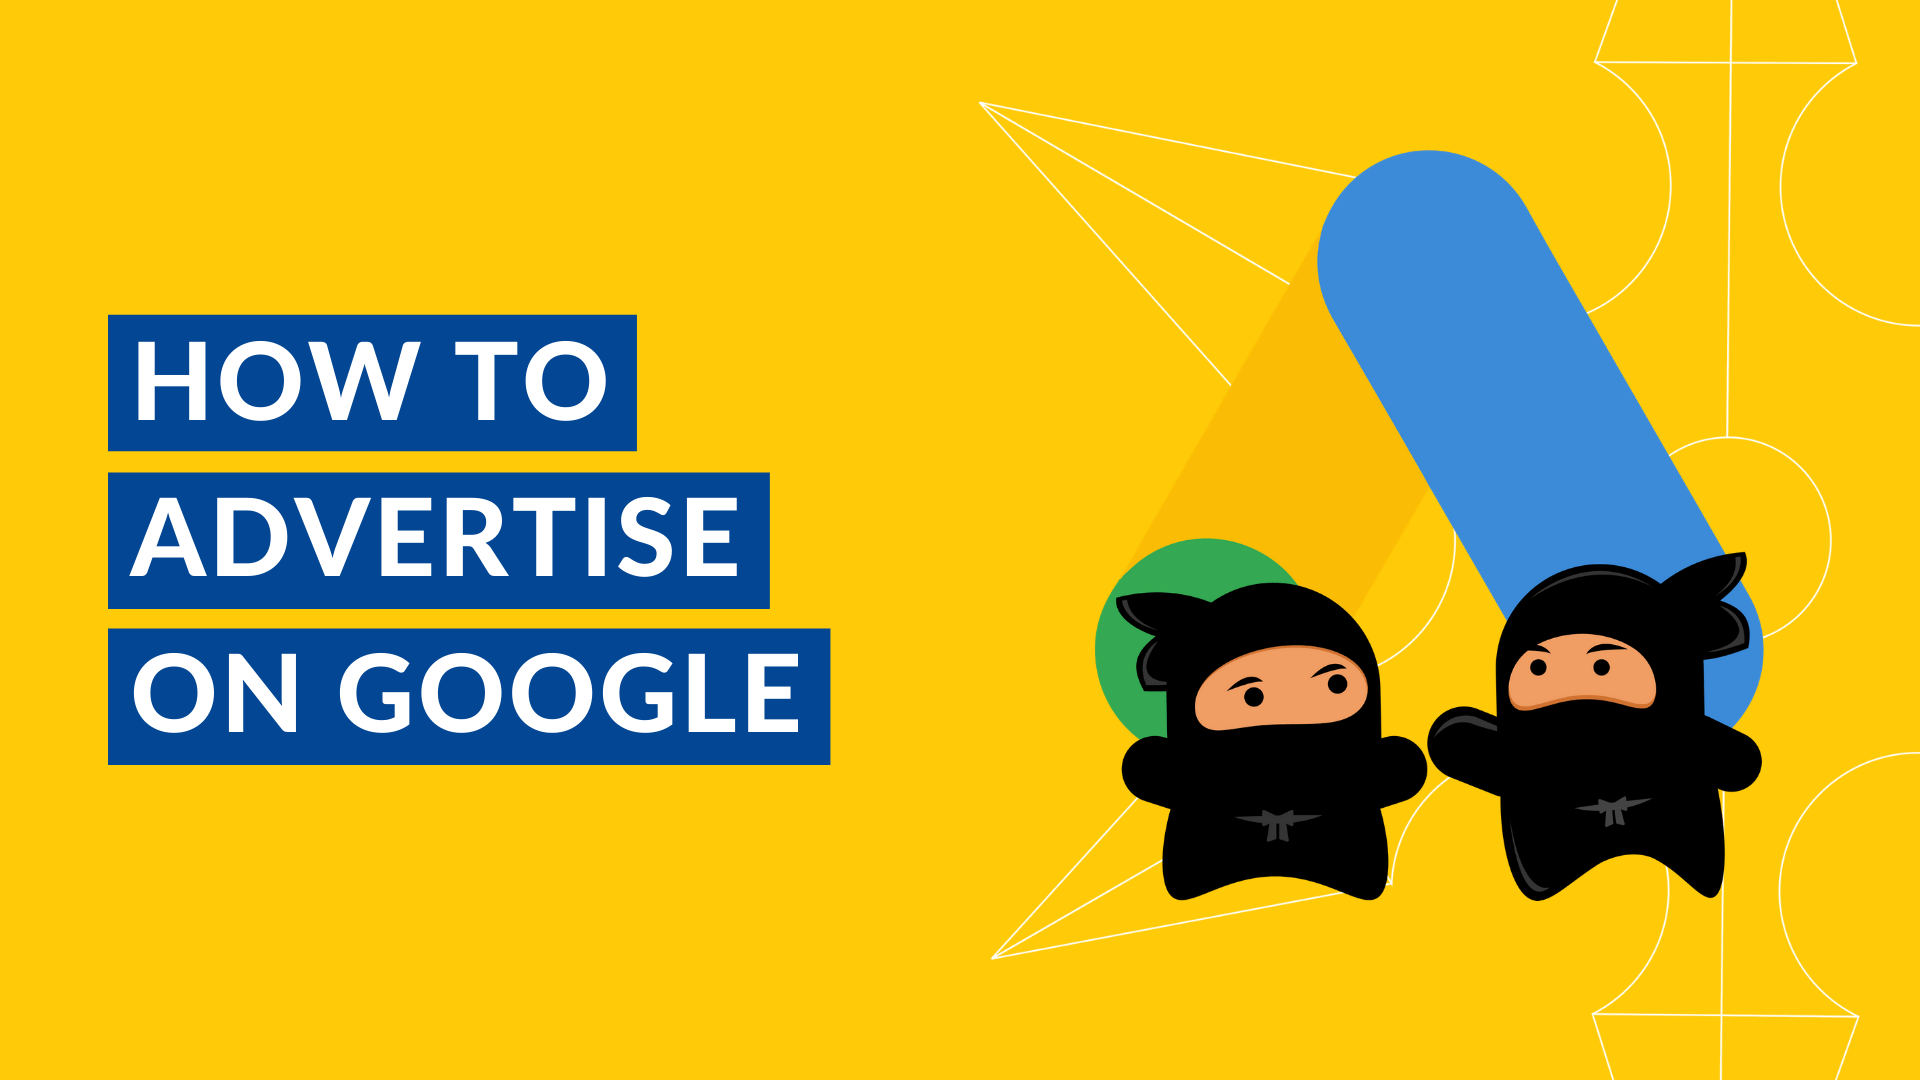 How To Advertise on Google and Earn More Traffic